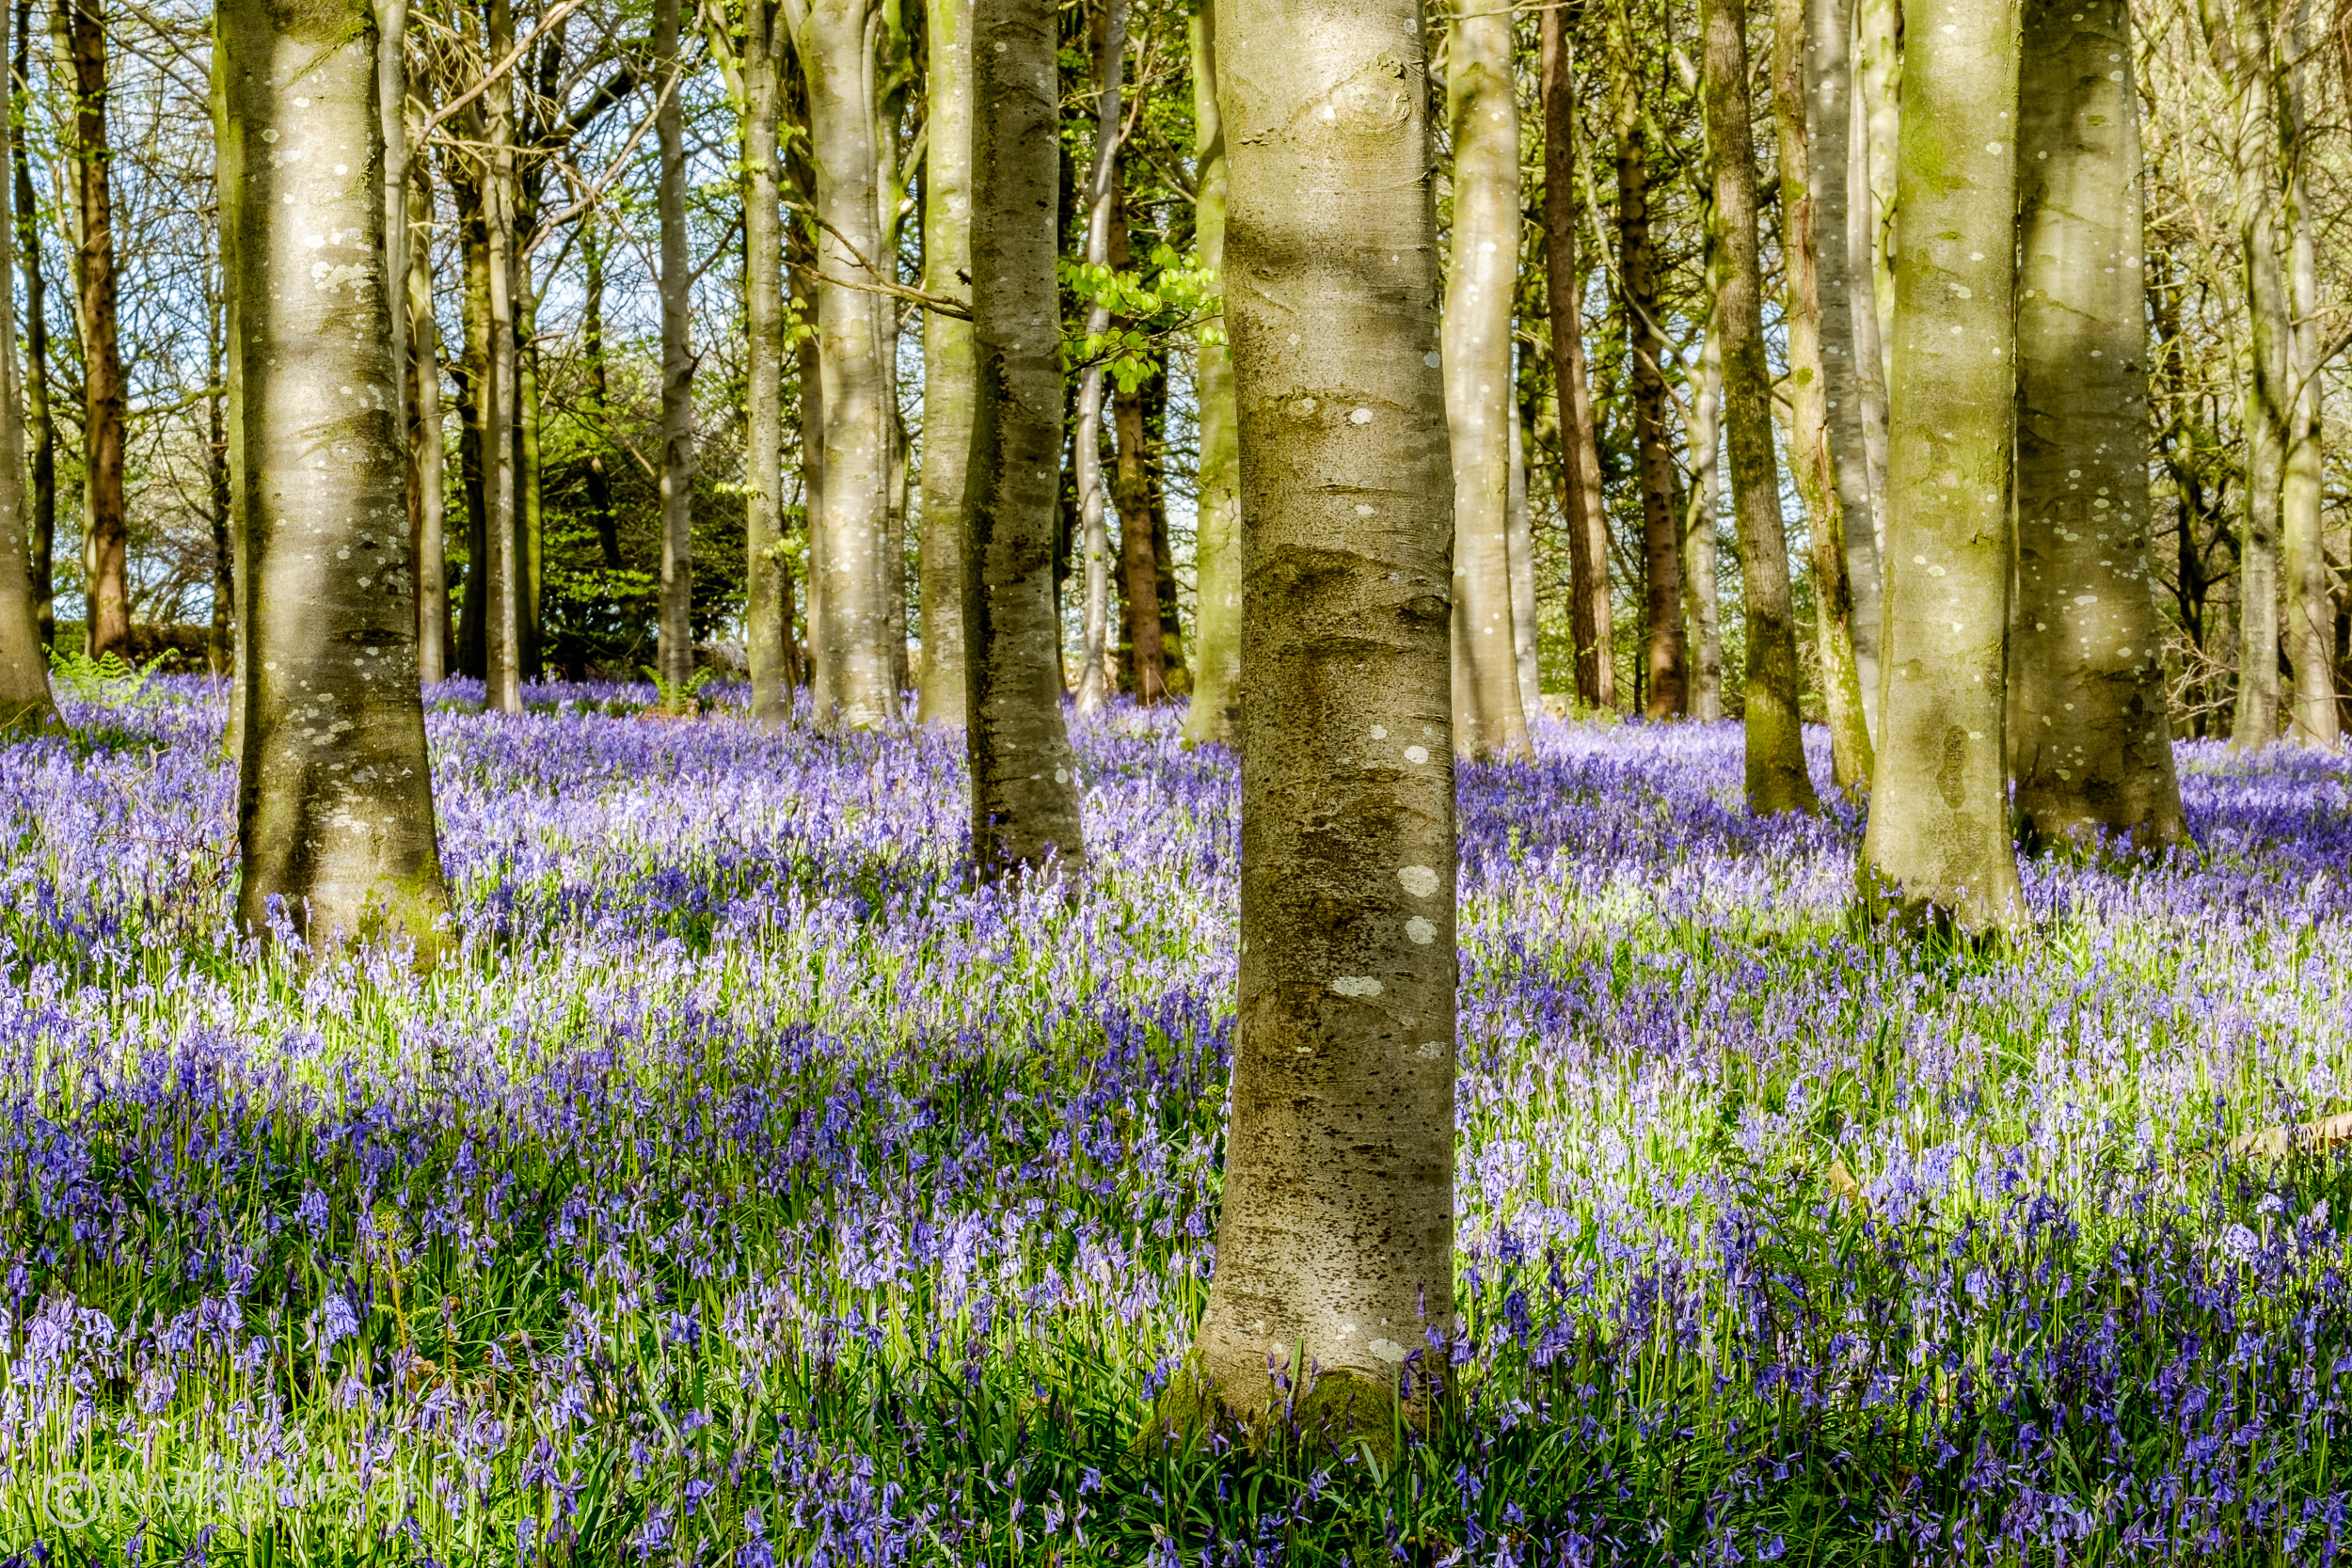 Bluebell wood, Dorset (Fujifilm X-T1, Fujinon XF 55-200mm F3.5-4.8 R LM OIS at 55mm, 1/12 sec f16, ISO200)